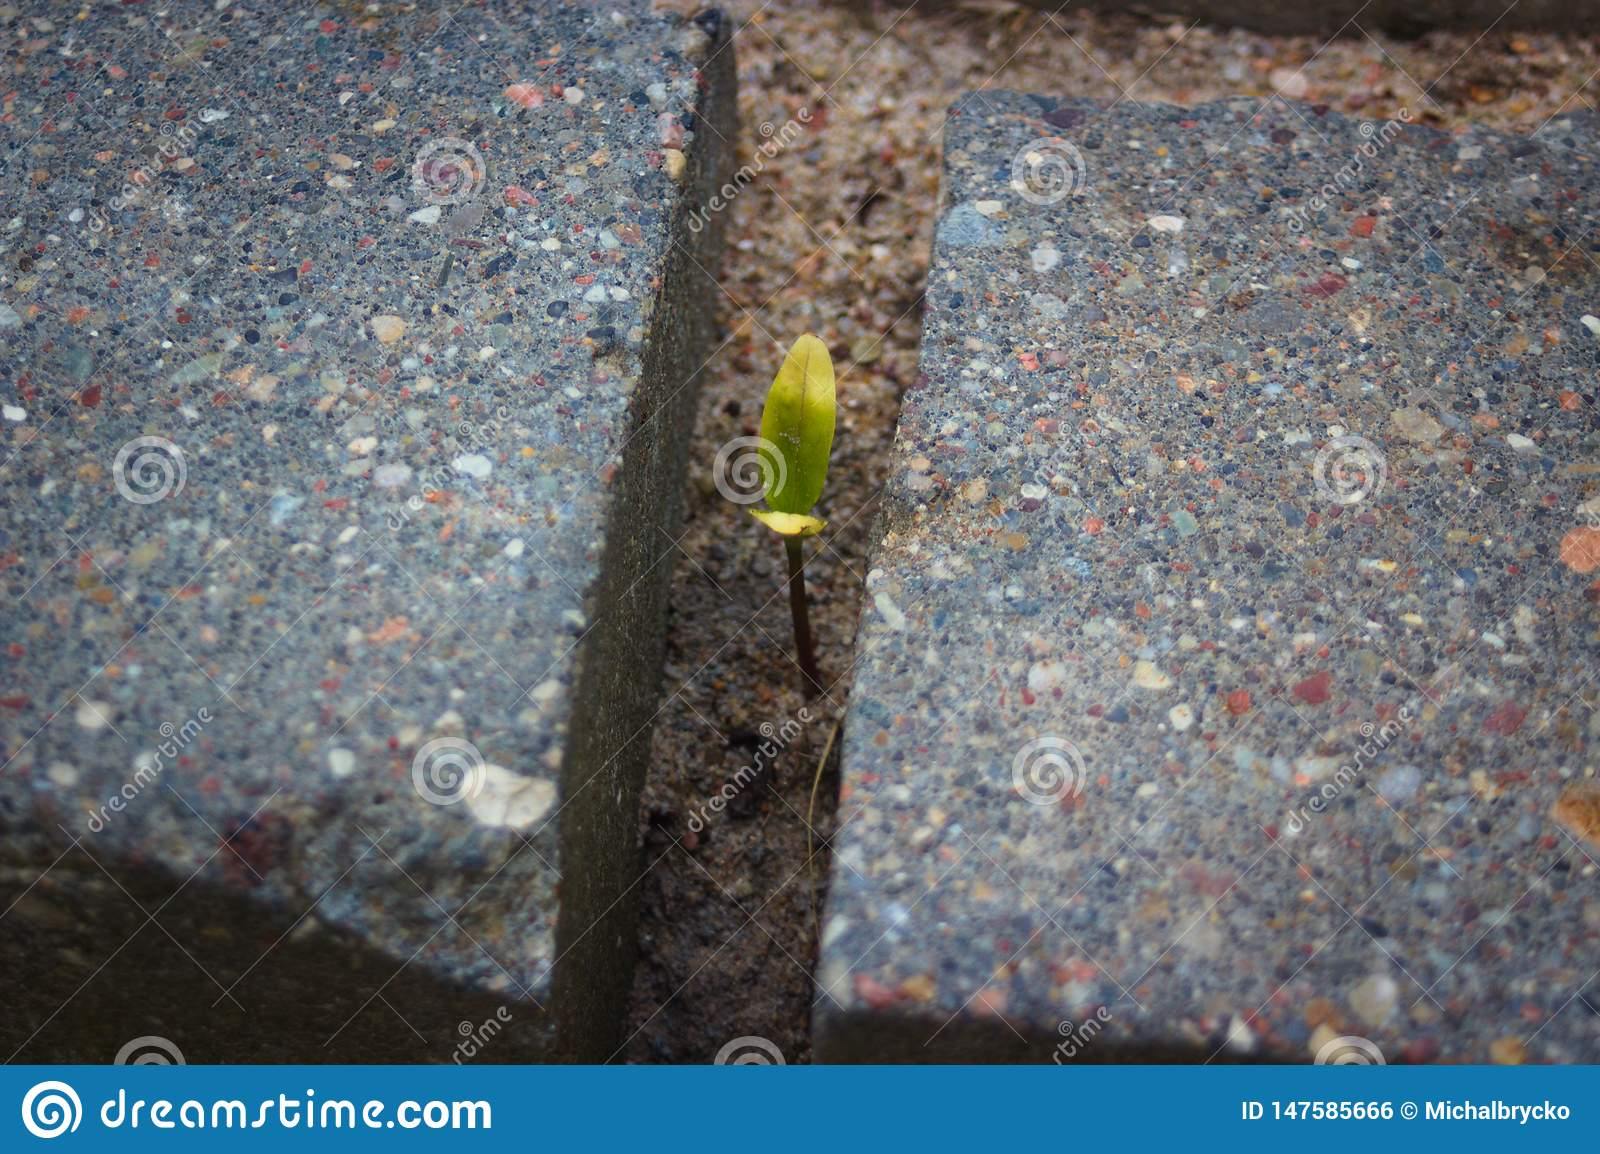 Small green plant surrounded by gray brick